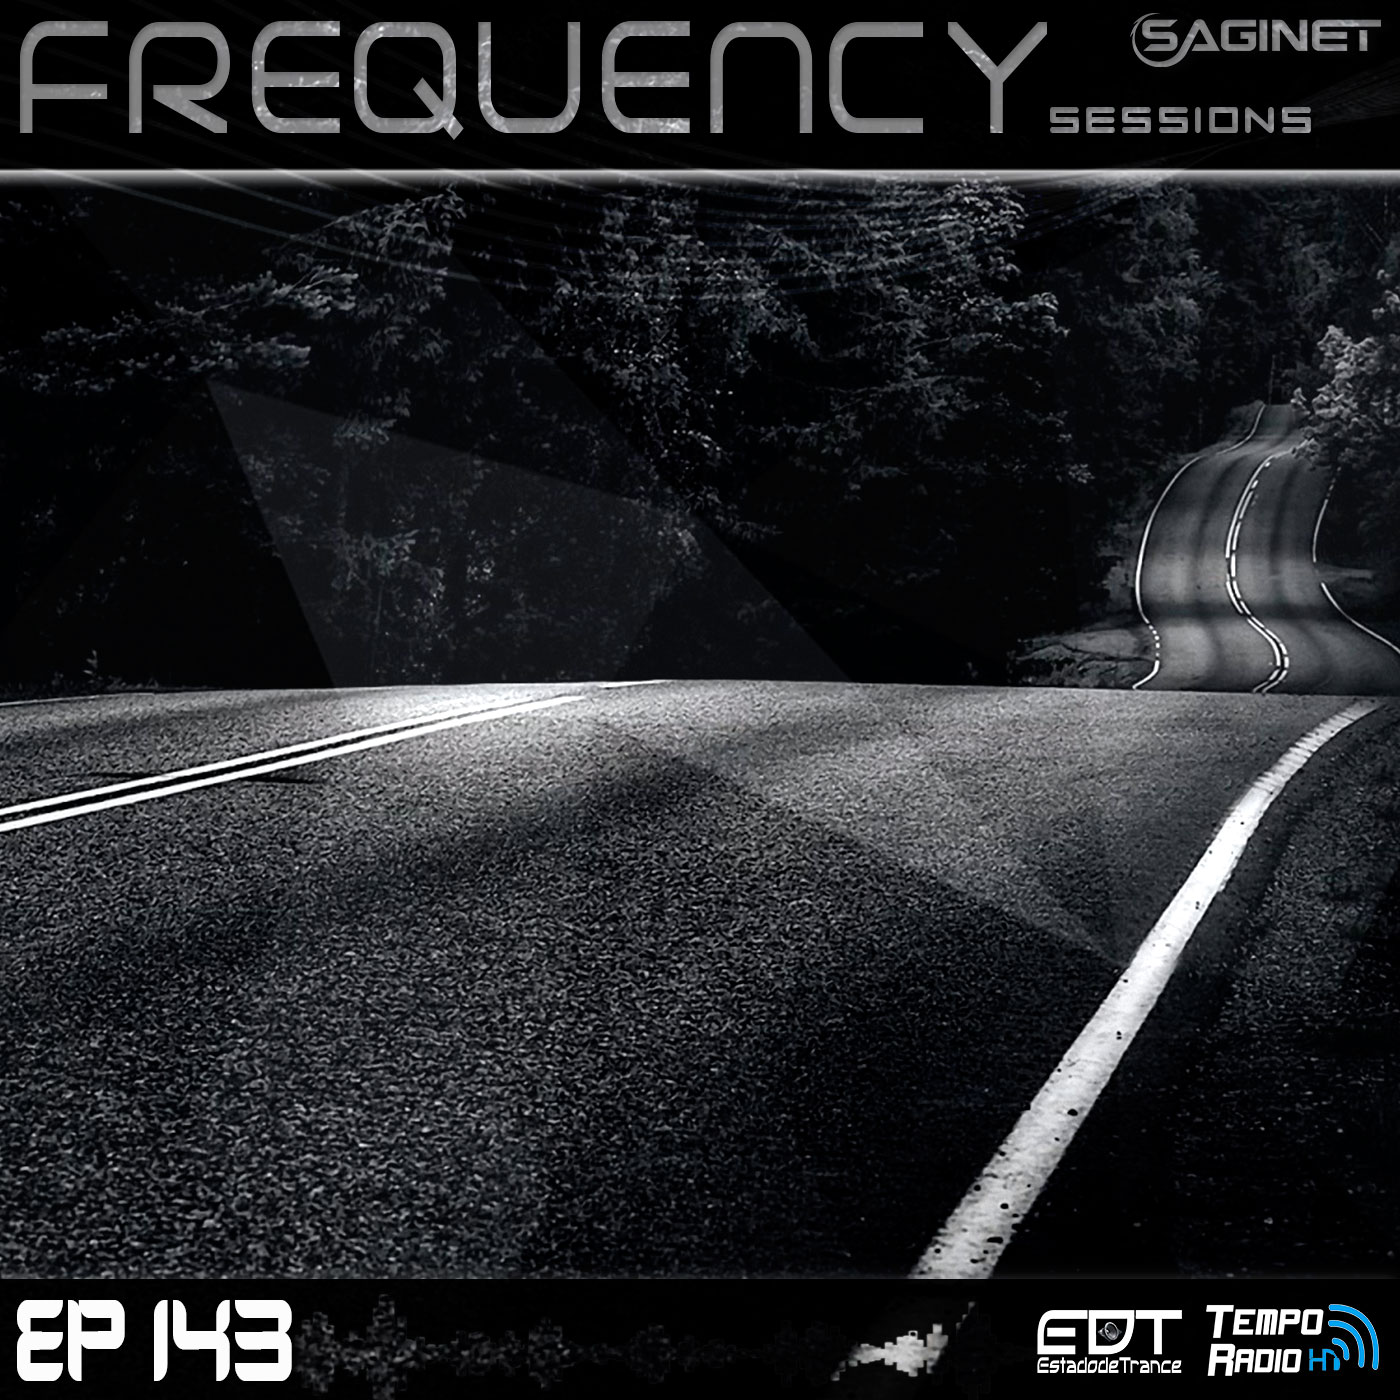 Dj Saginet - Frequency Sessions 143 ()